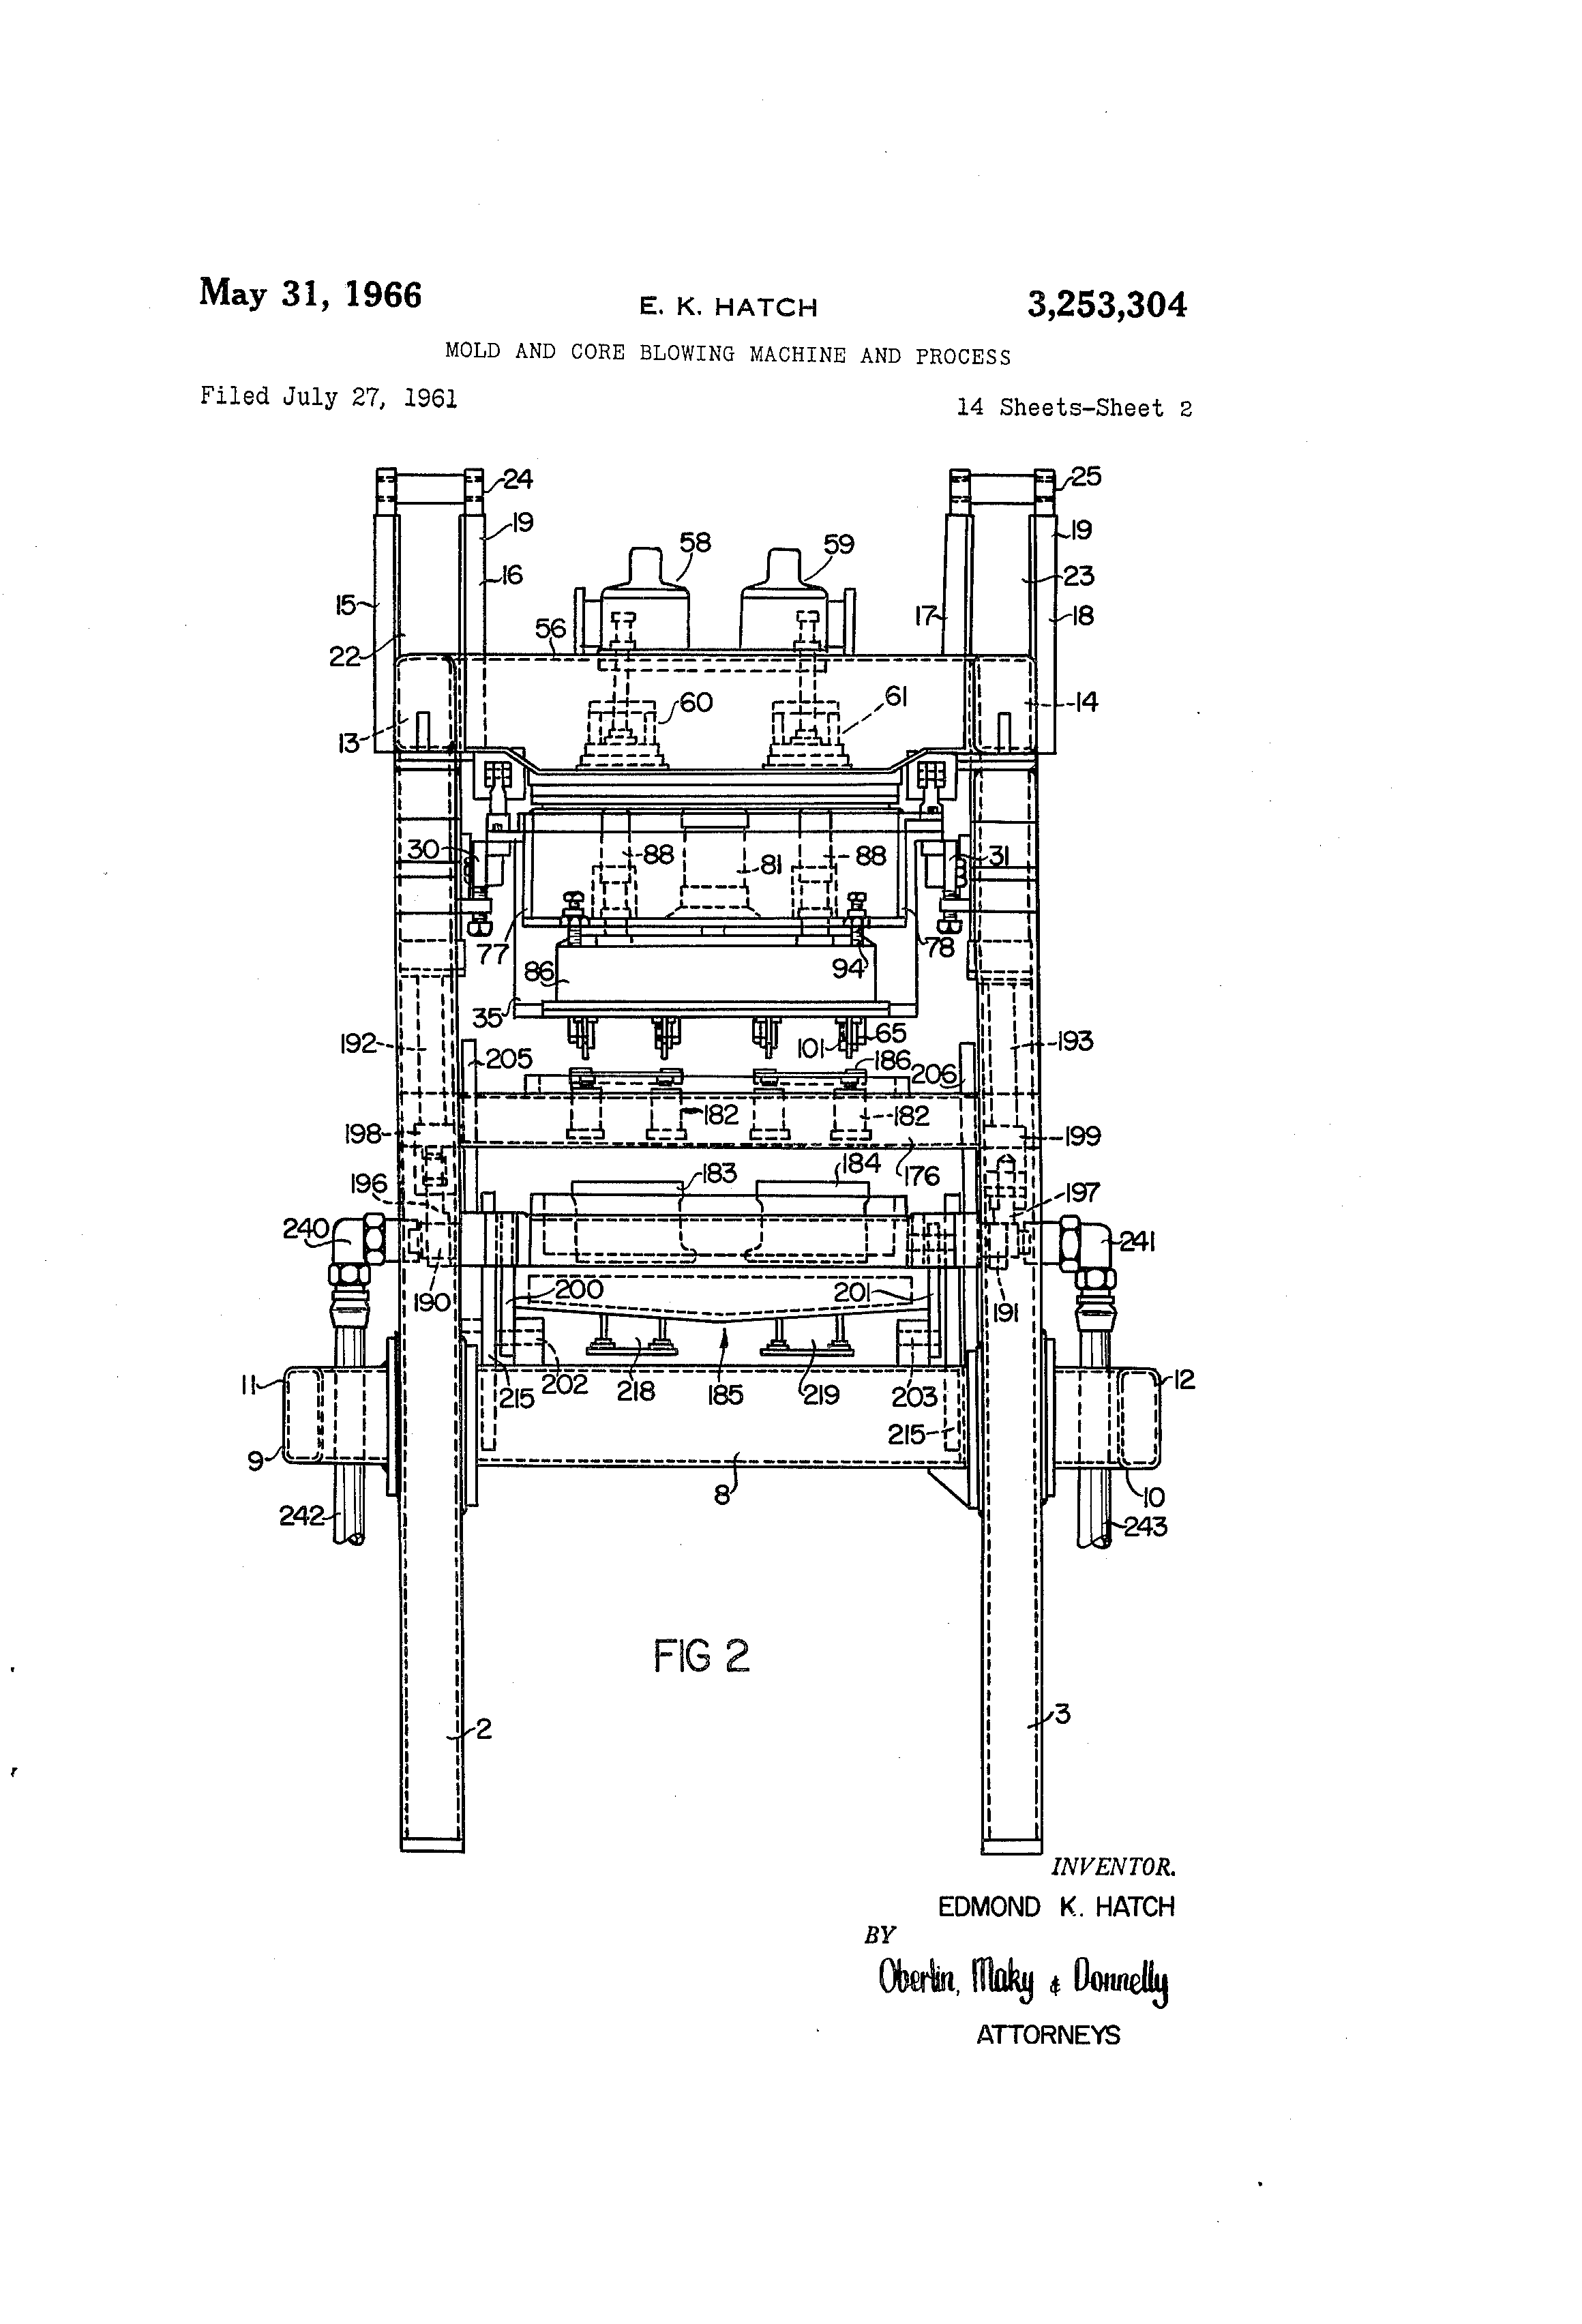 US3253304 1 patent us3253304 mold and core blowing machine and process  at mifinder.co